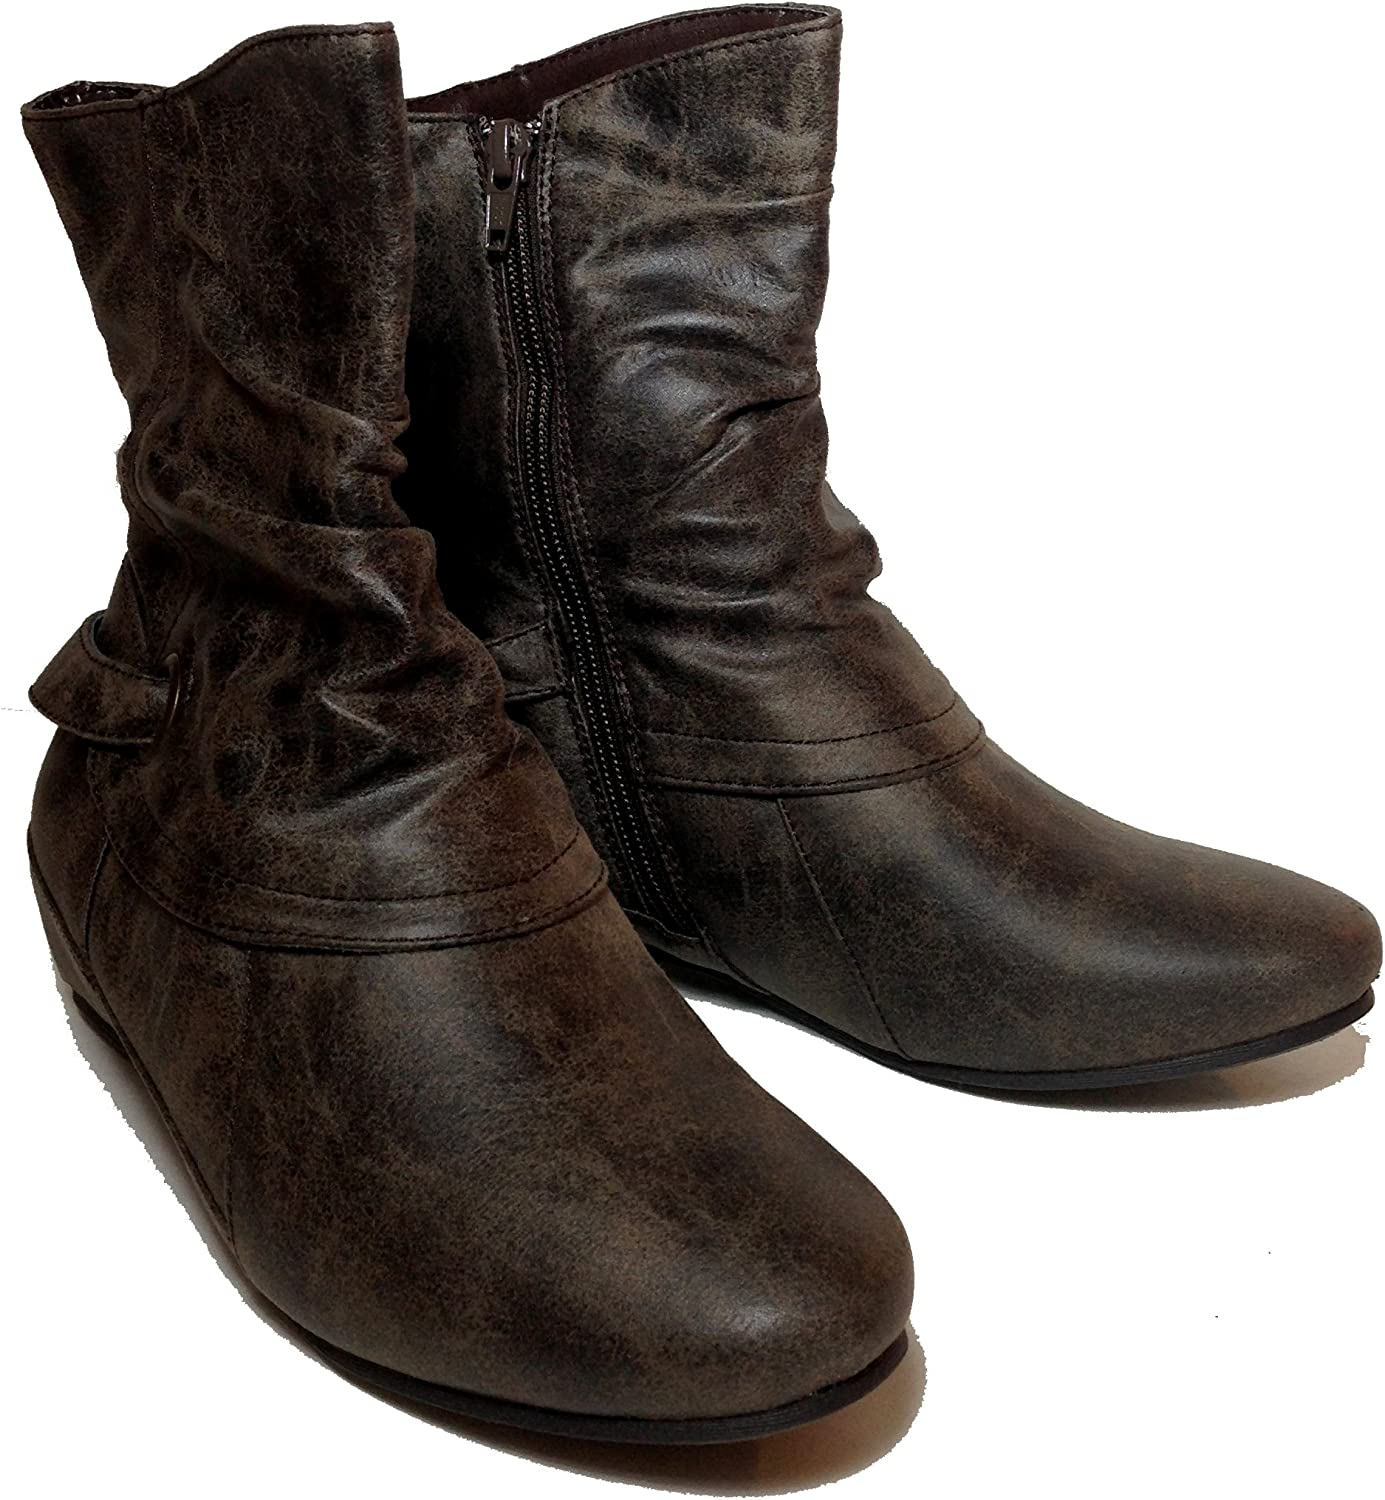 Bass Heritage Collection Women's Katya Ankle Mushroom Boots Size 6.5 M